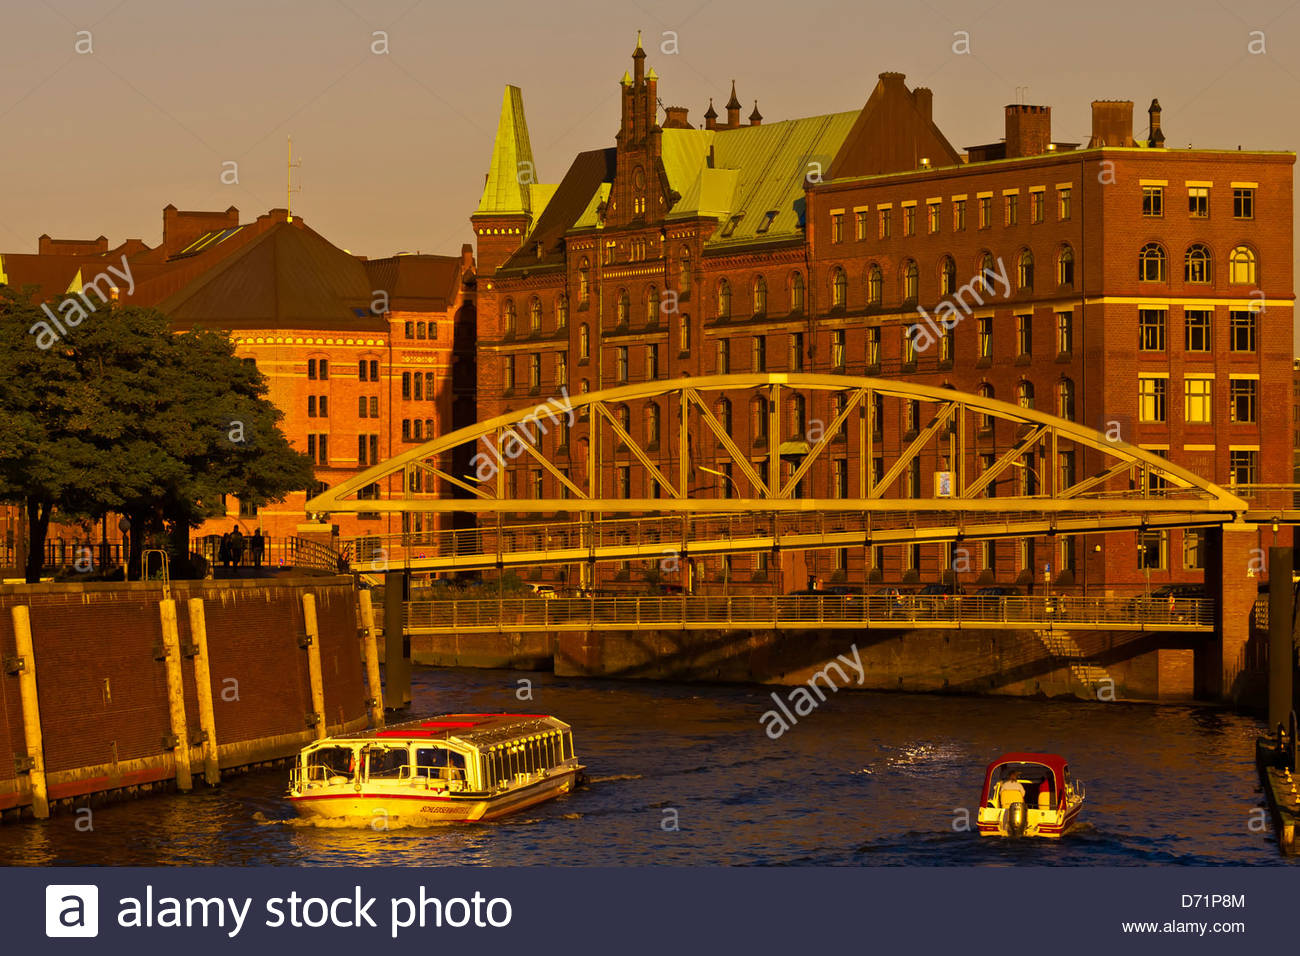 Canals in Speicherstadt (Warehouse District), Hafen City (along the harbor), Hamburg, Germany - Stock Image